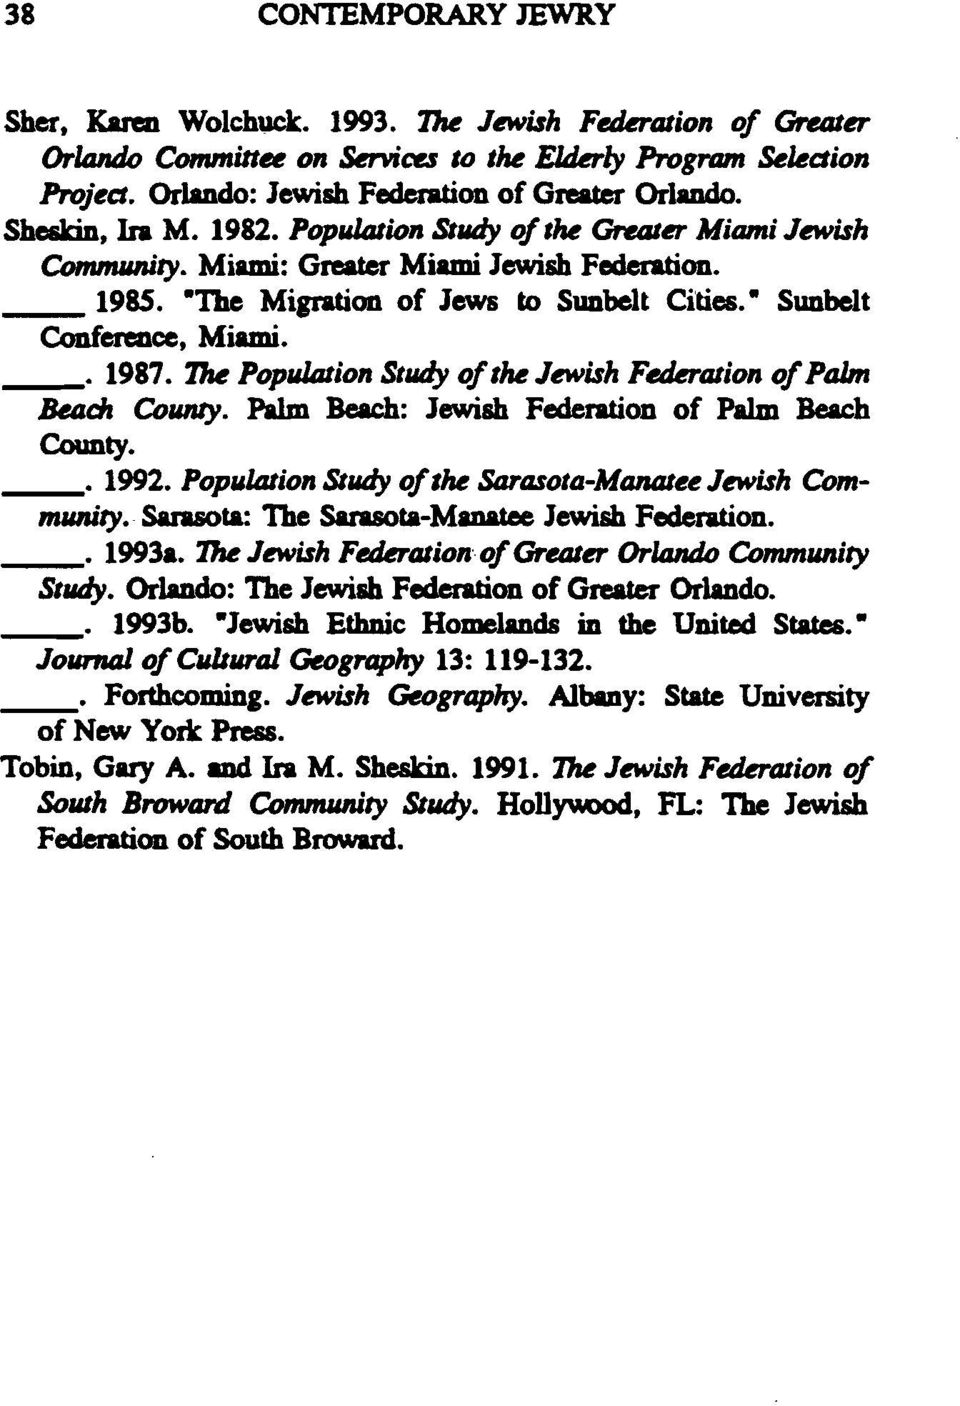 1987. The Popullltion SIllily oflhe Jewish Fetlermion ofpalm BeIlch Counry. Palm Beach: Jewish Federation of Palm Beach County. 1992. Population SIllily oflhe Sarasolil-Manalee Jewish Community.